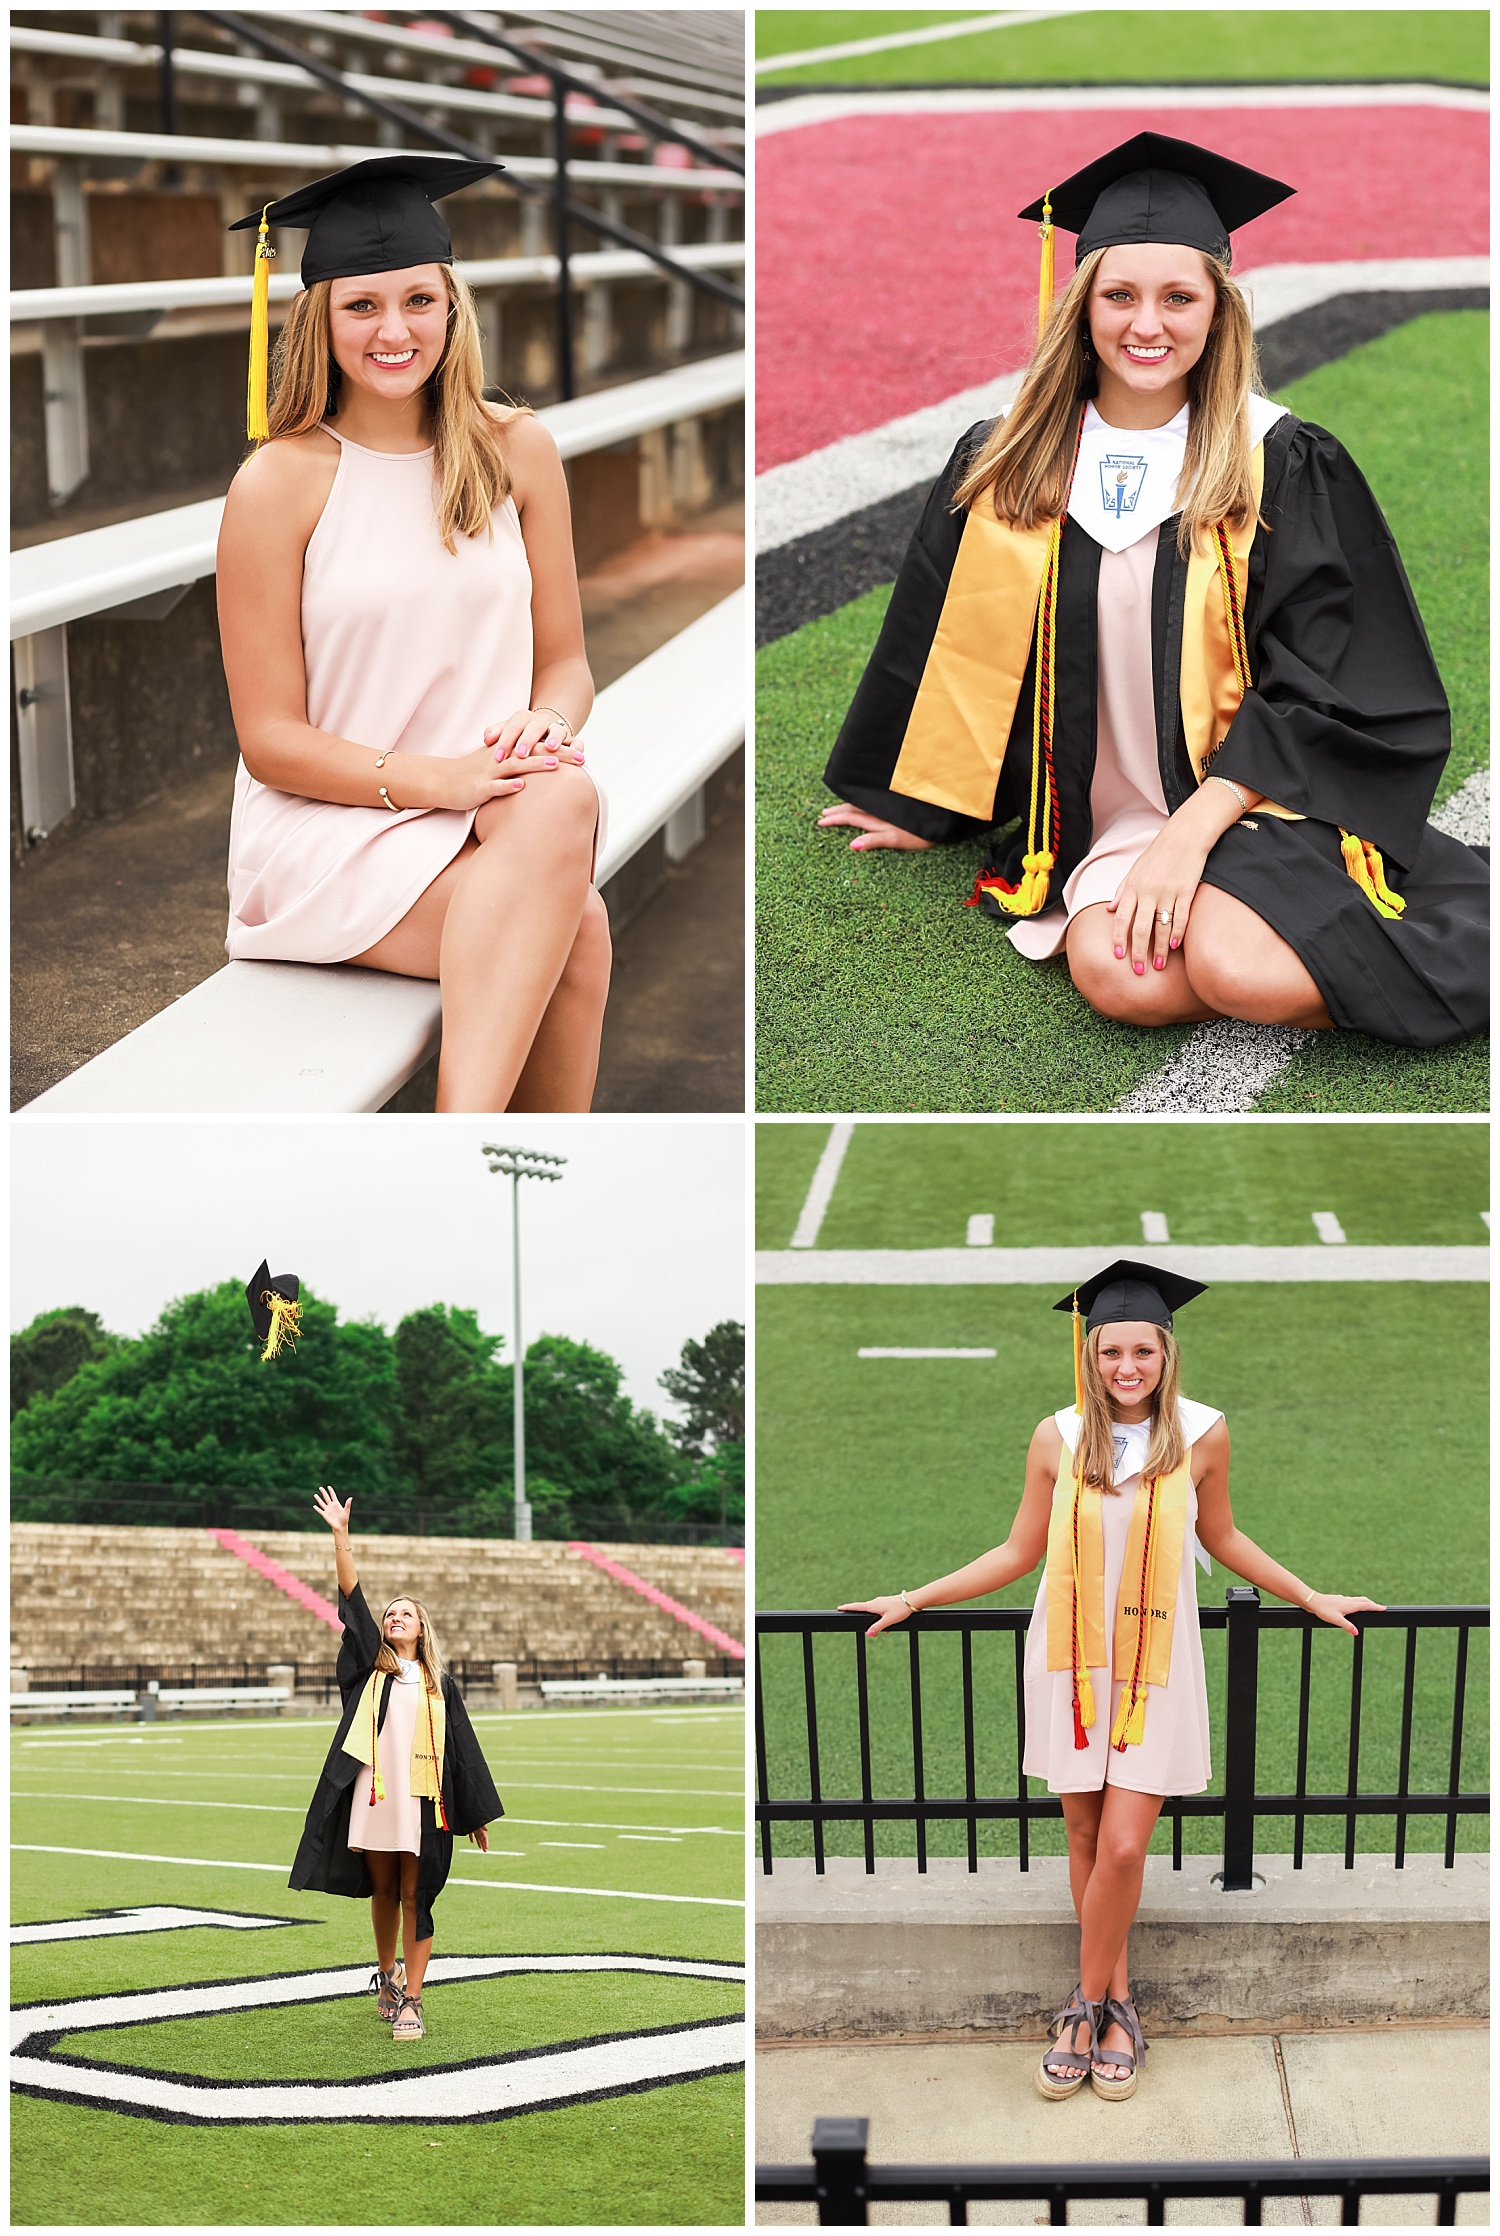 opelika senior portraits graduation session stadium